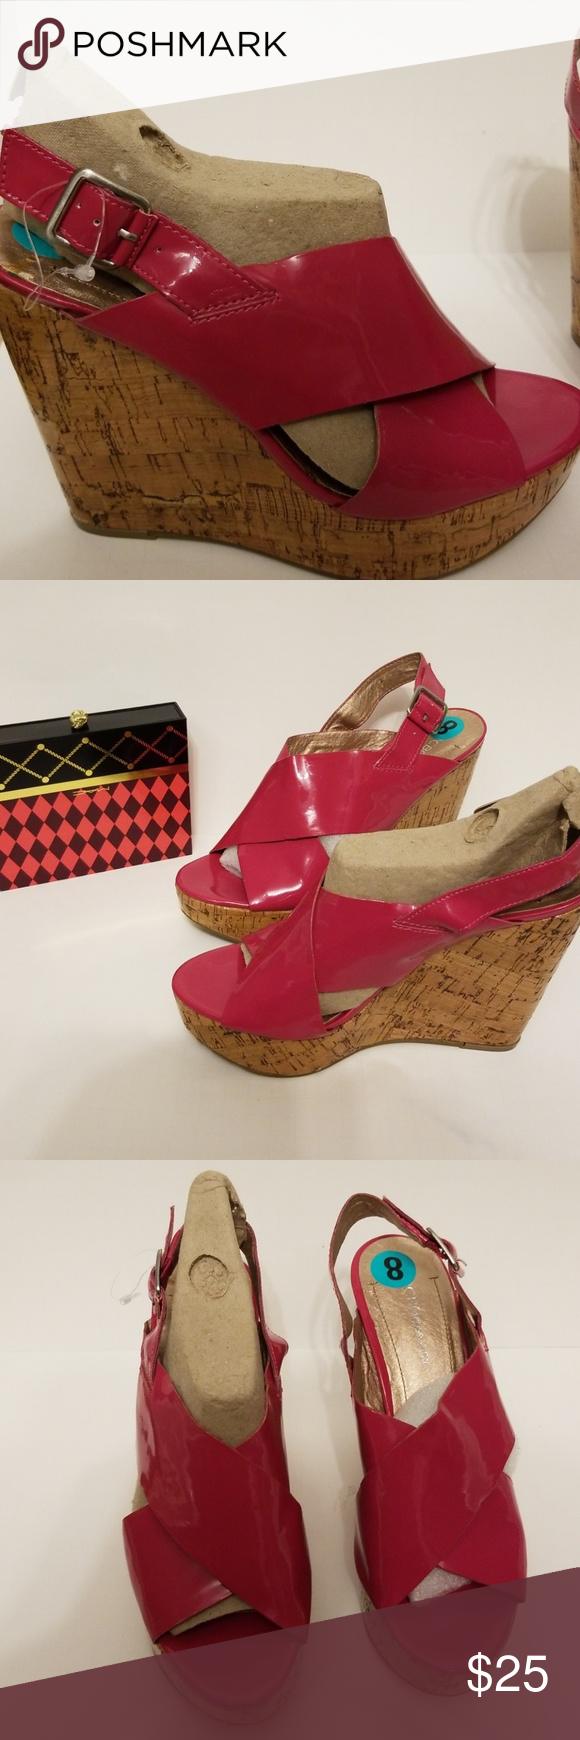 6ecf321c23c BCBG shoes BCBG Generation sandals. Hot pink open toe wedge sandals. New